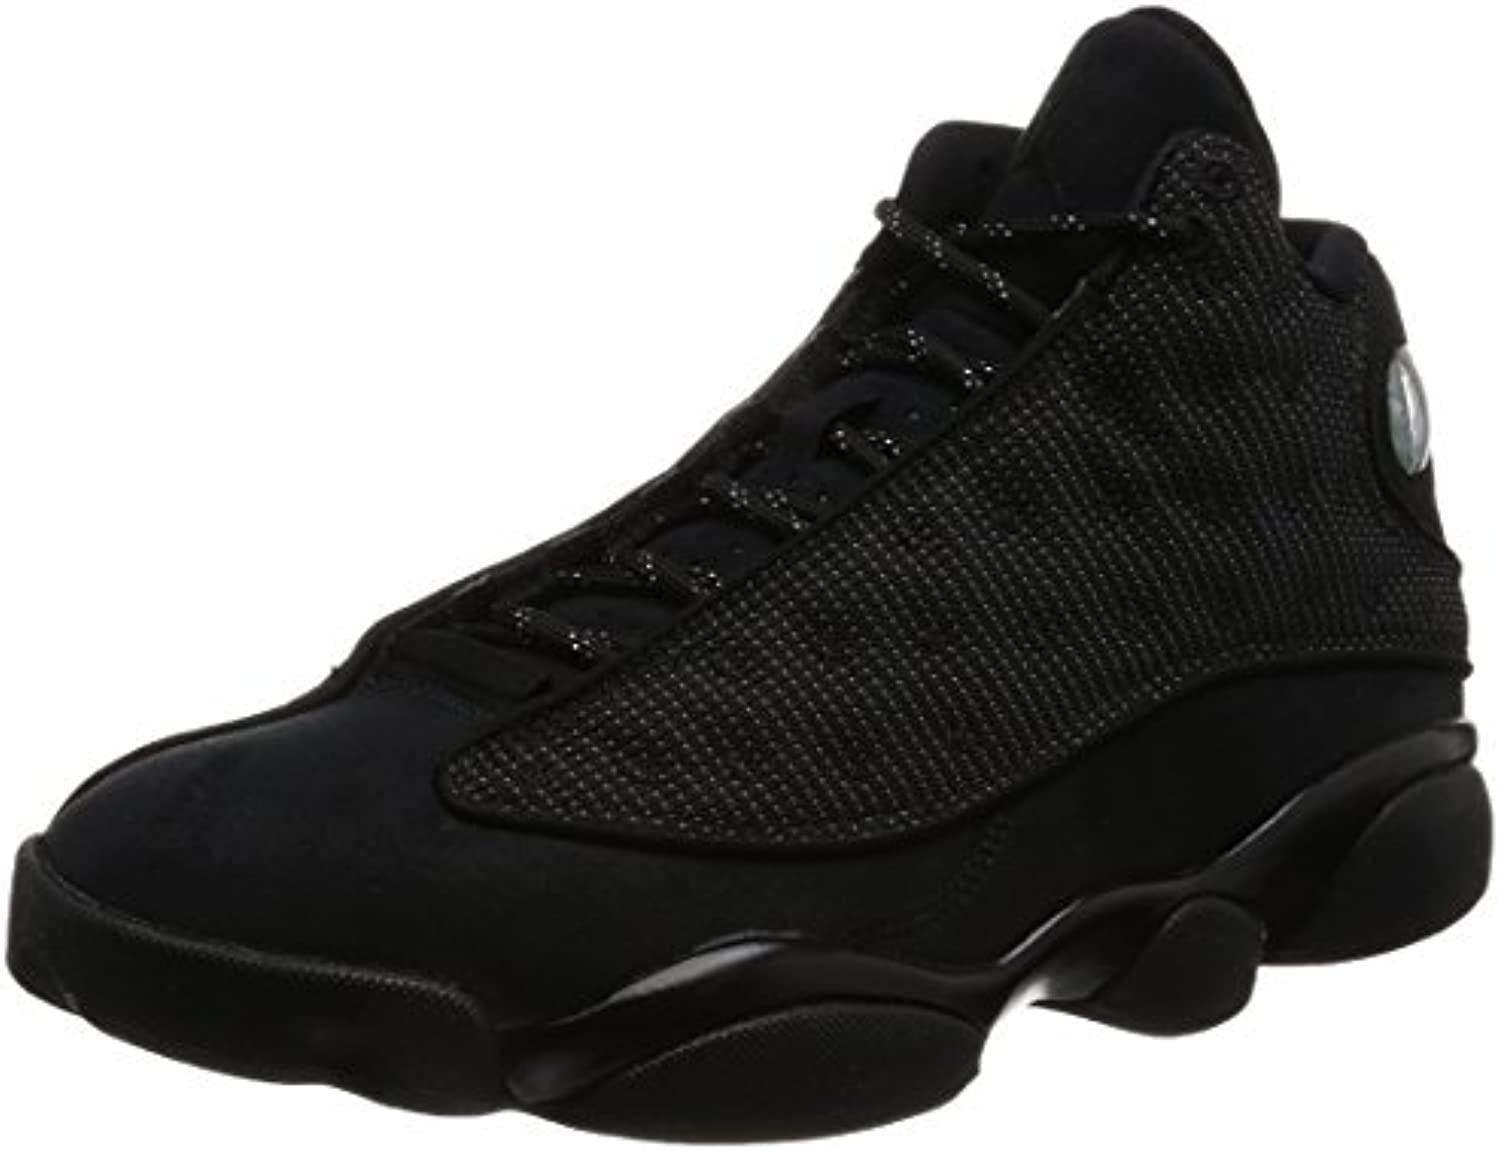 AIR JORDAN 13 RETRO 'BLACK CAT', BLACK/BLACK-ANTHRACITE, 11